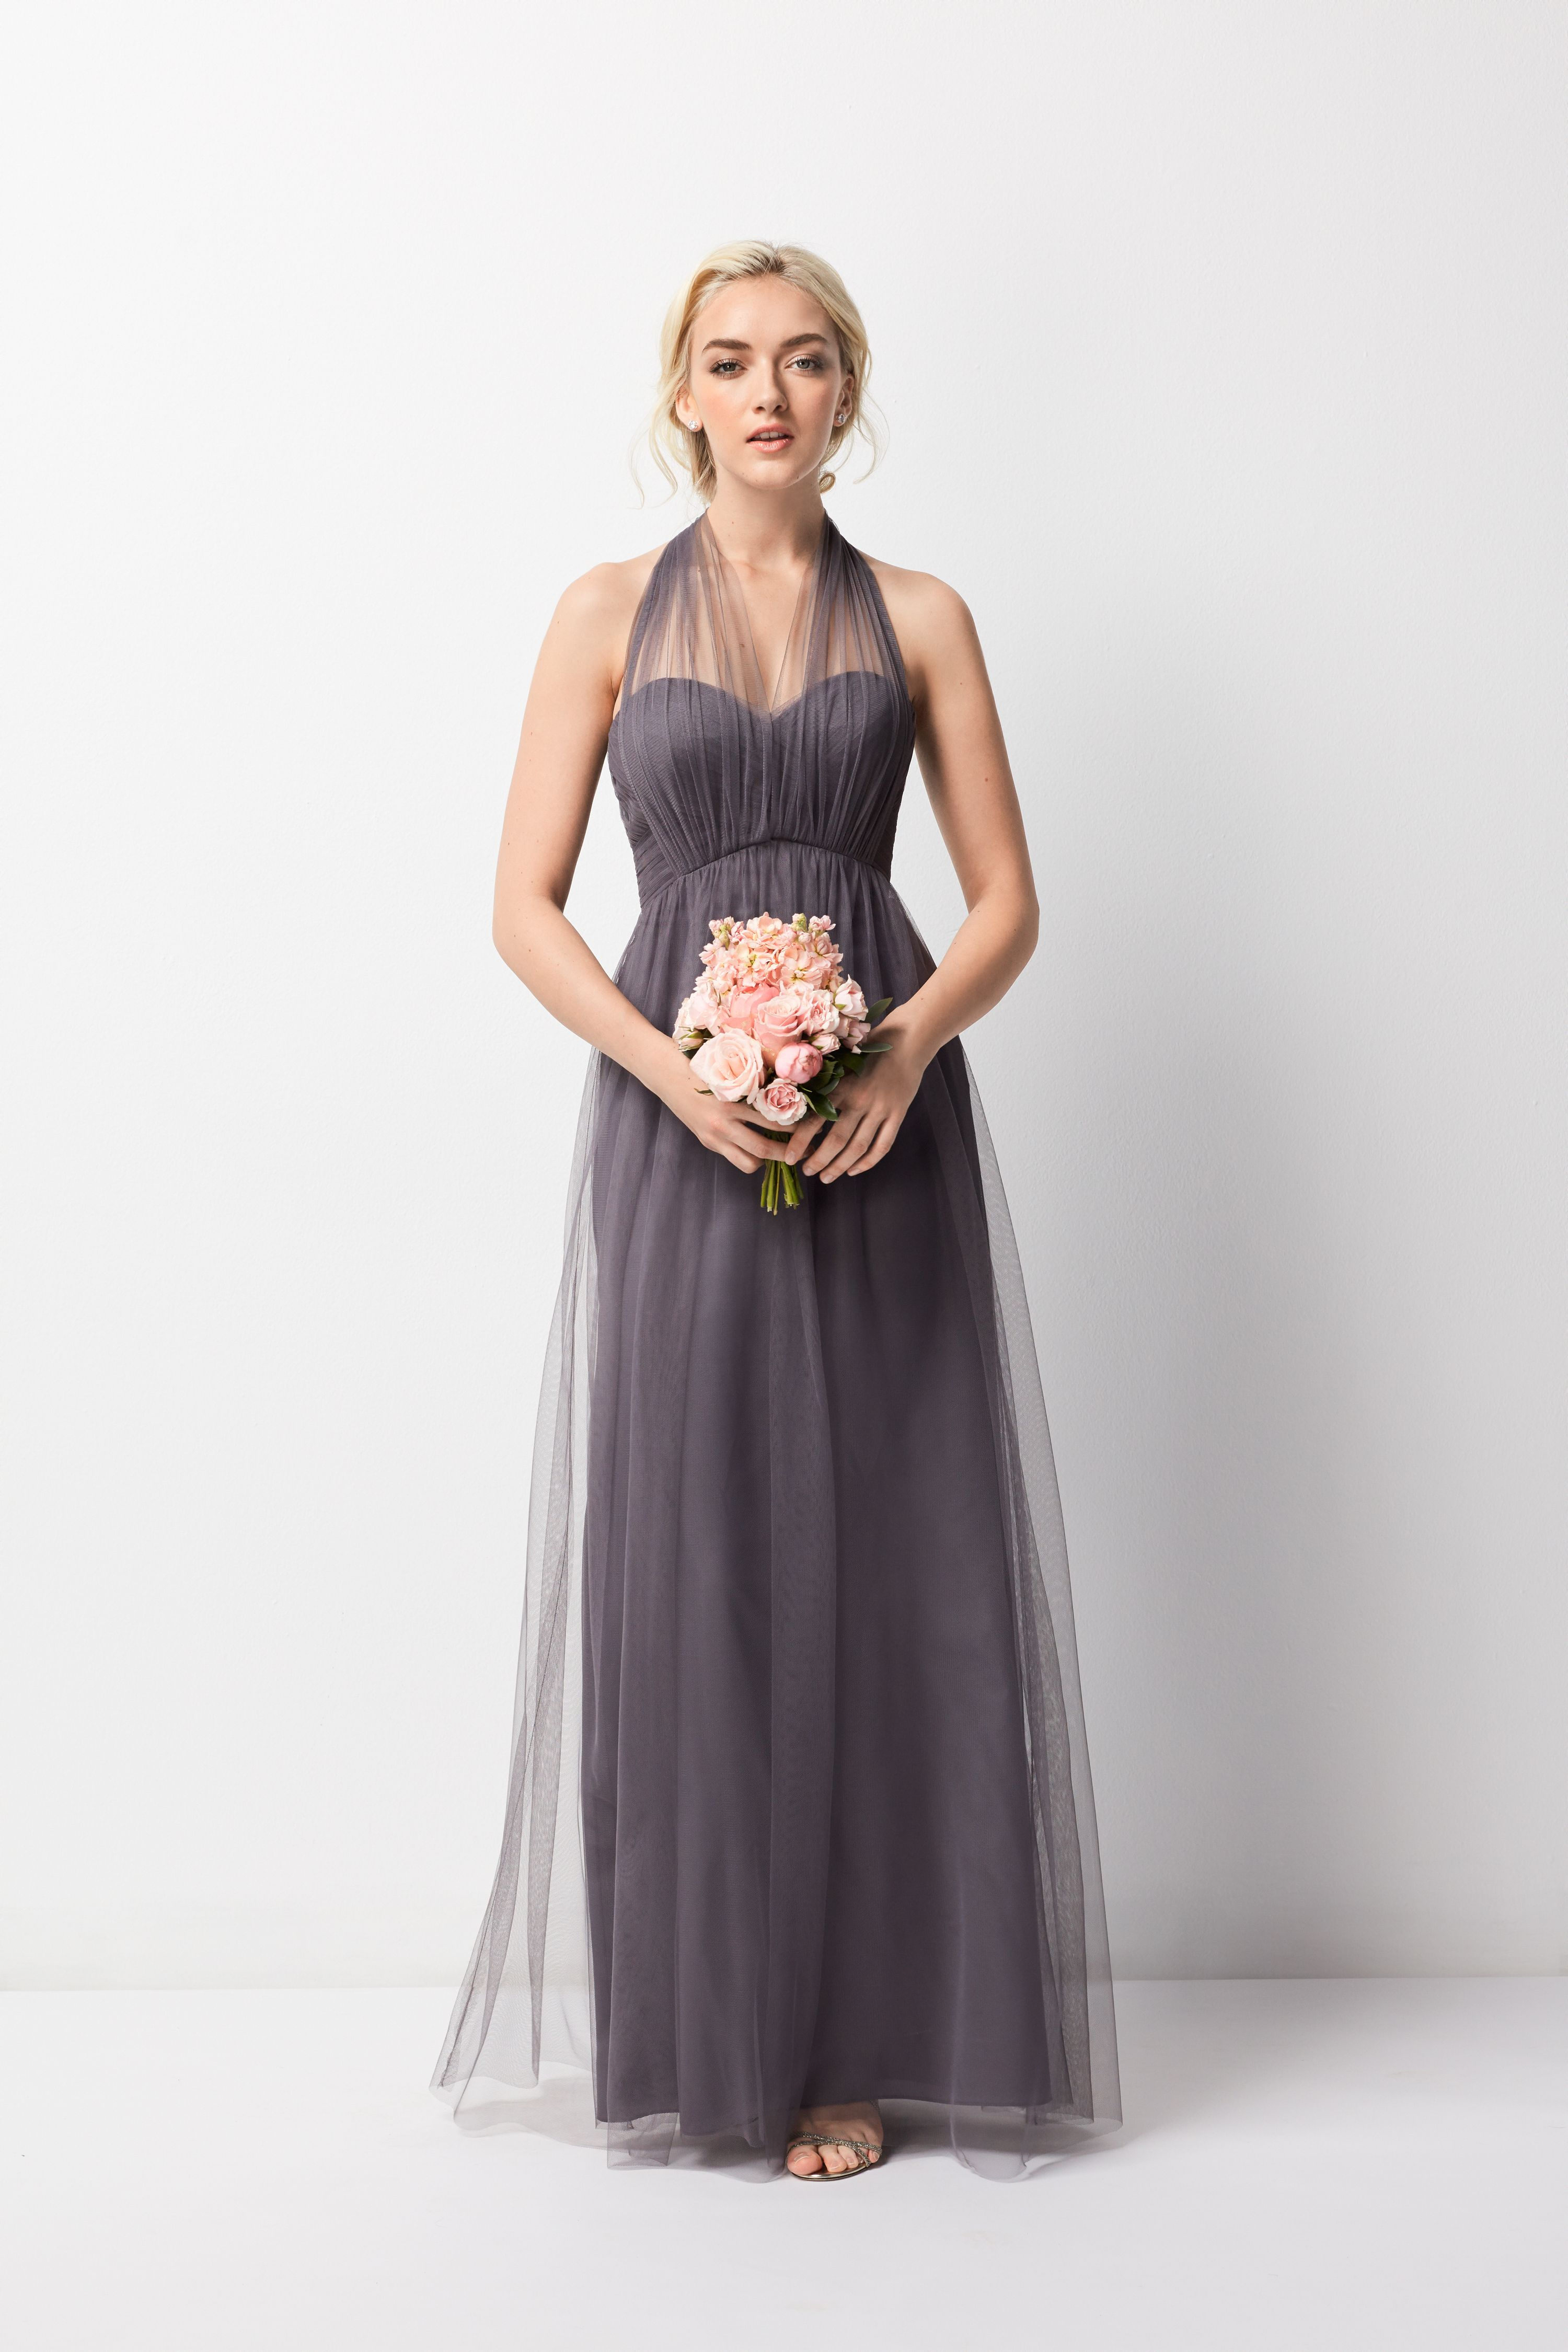 Watterswtoo bridesmaids dress style 245 with infinity straps watterswtoo bridesmaids dress style 245 with infinity straps ombrellifo Images